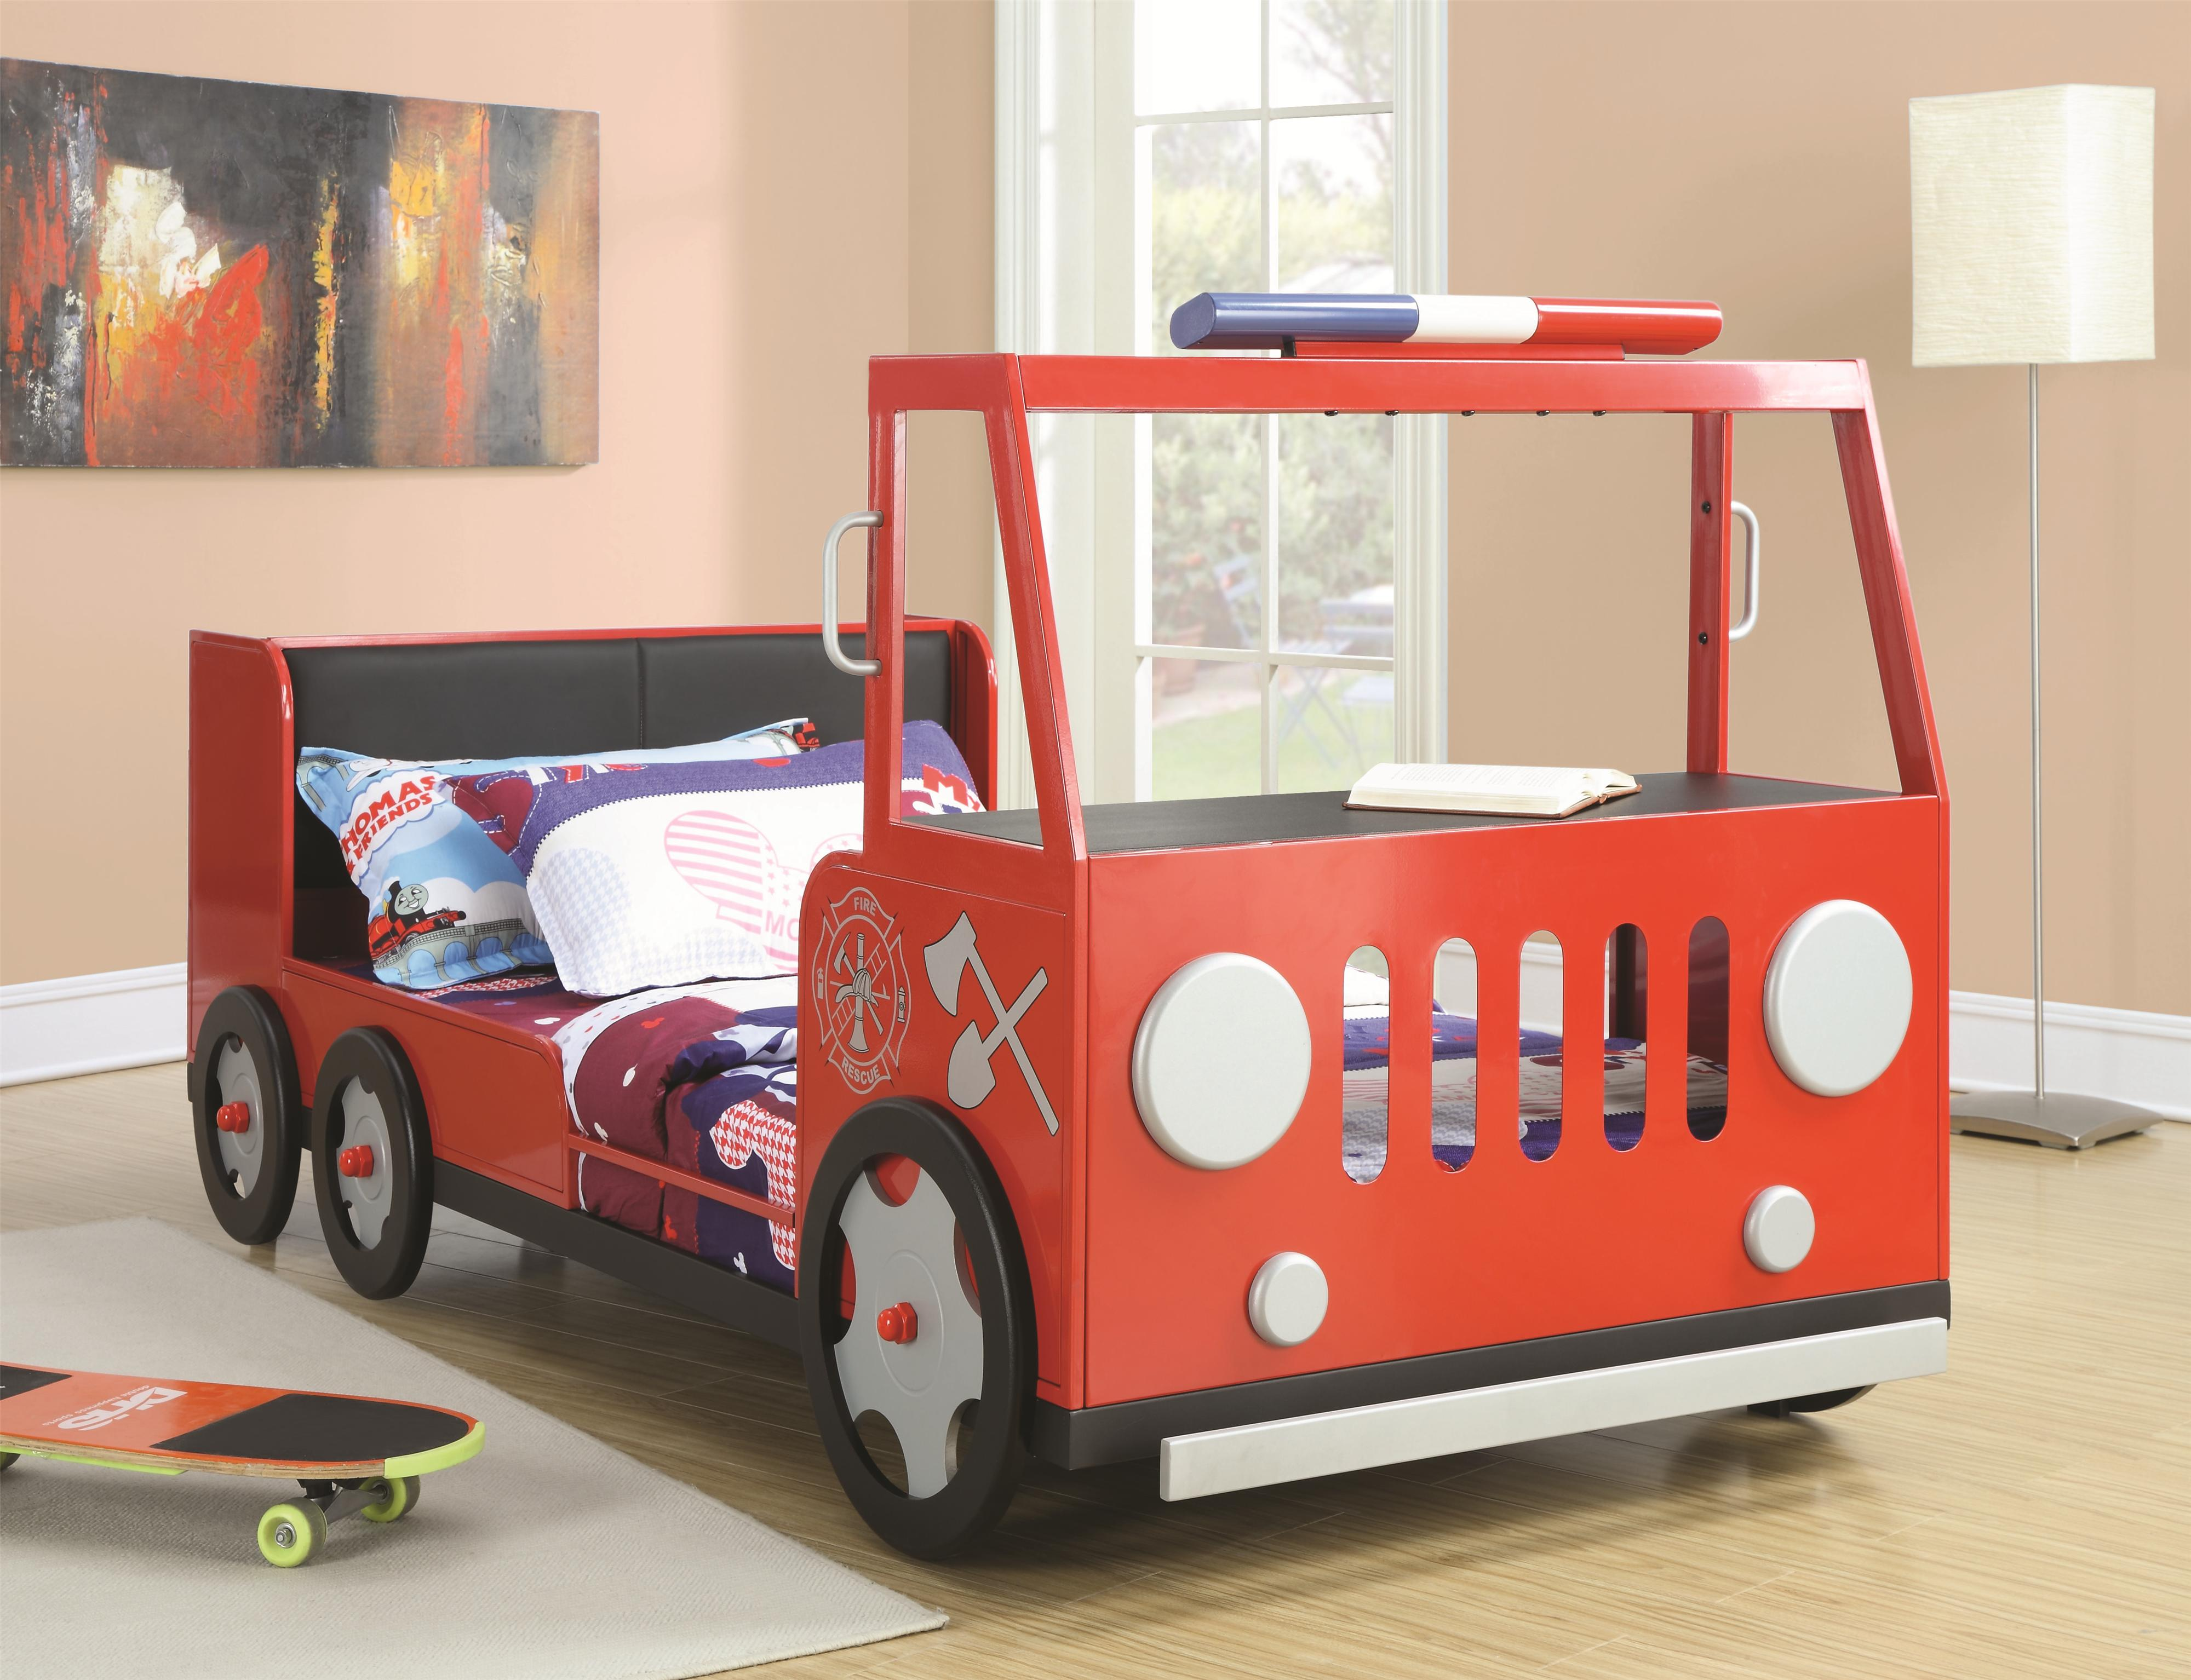 Wooden car beds for boys - Wooden Car Beds For Boys 6